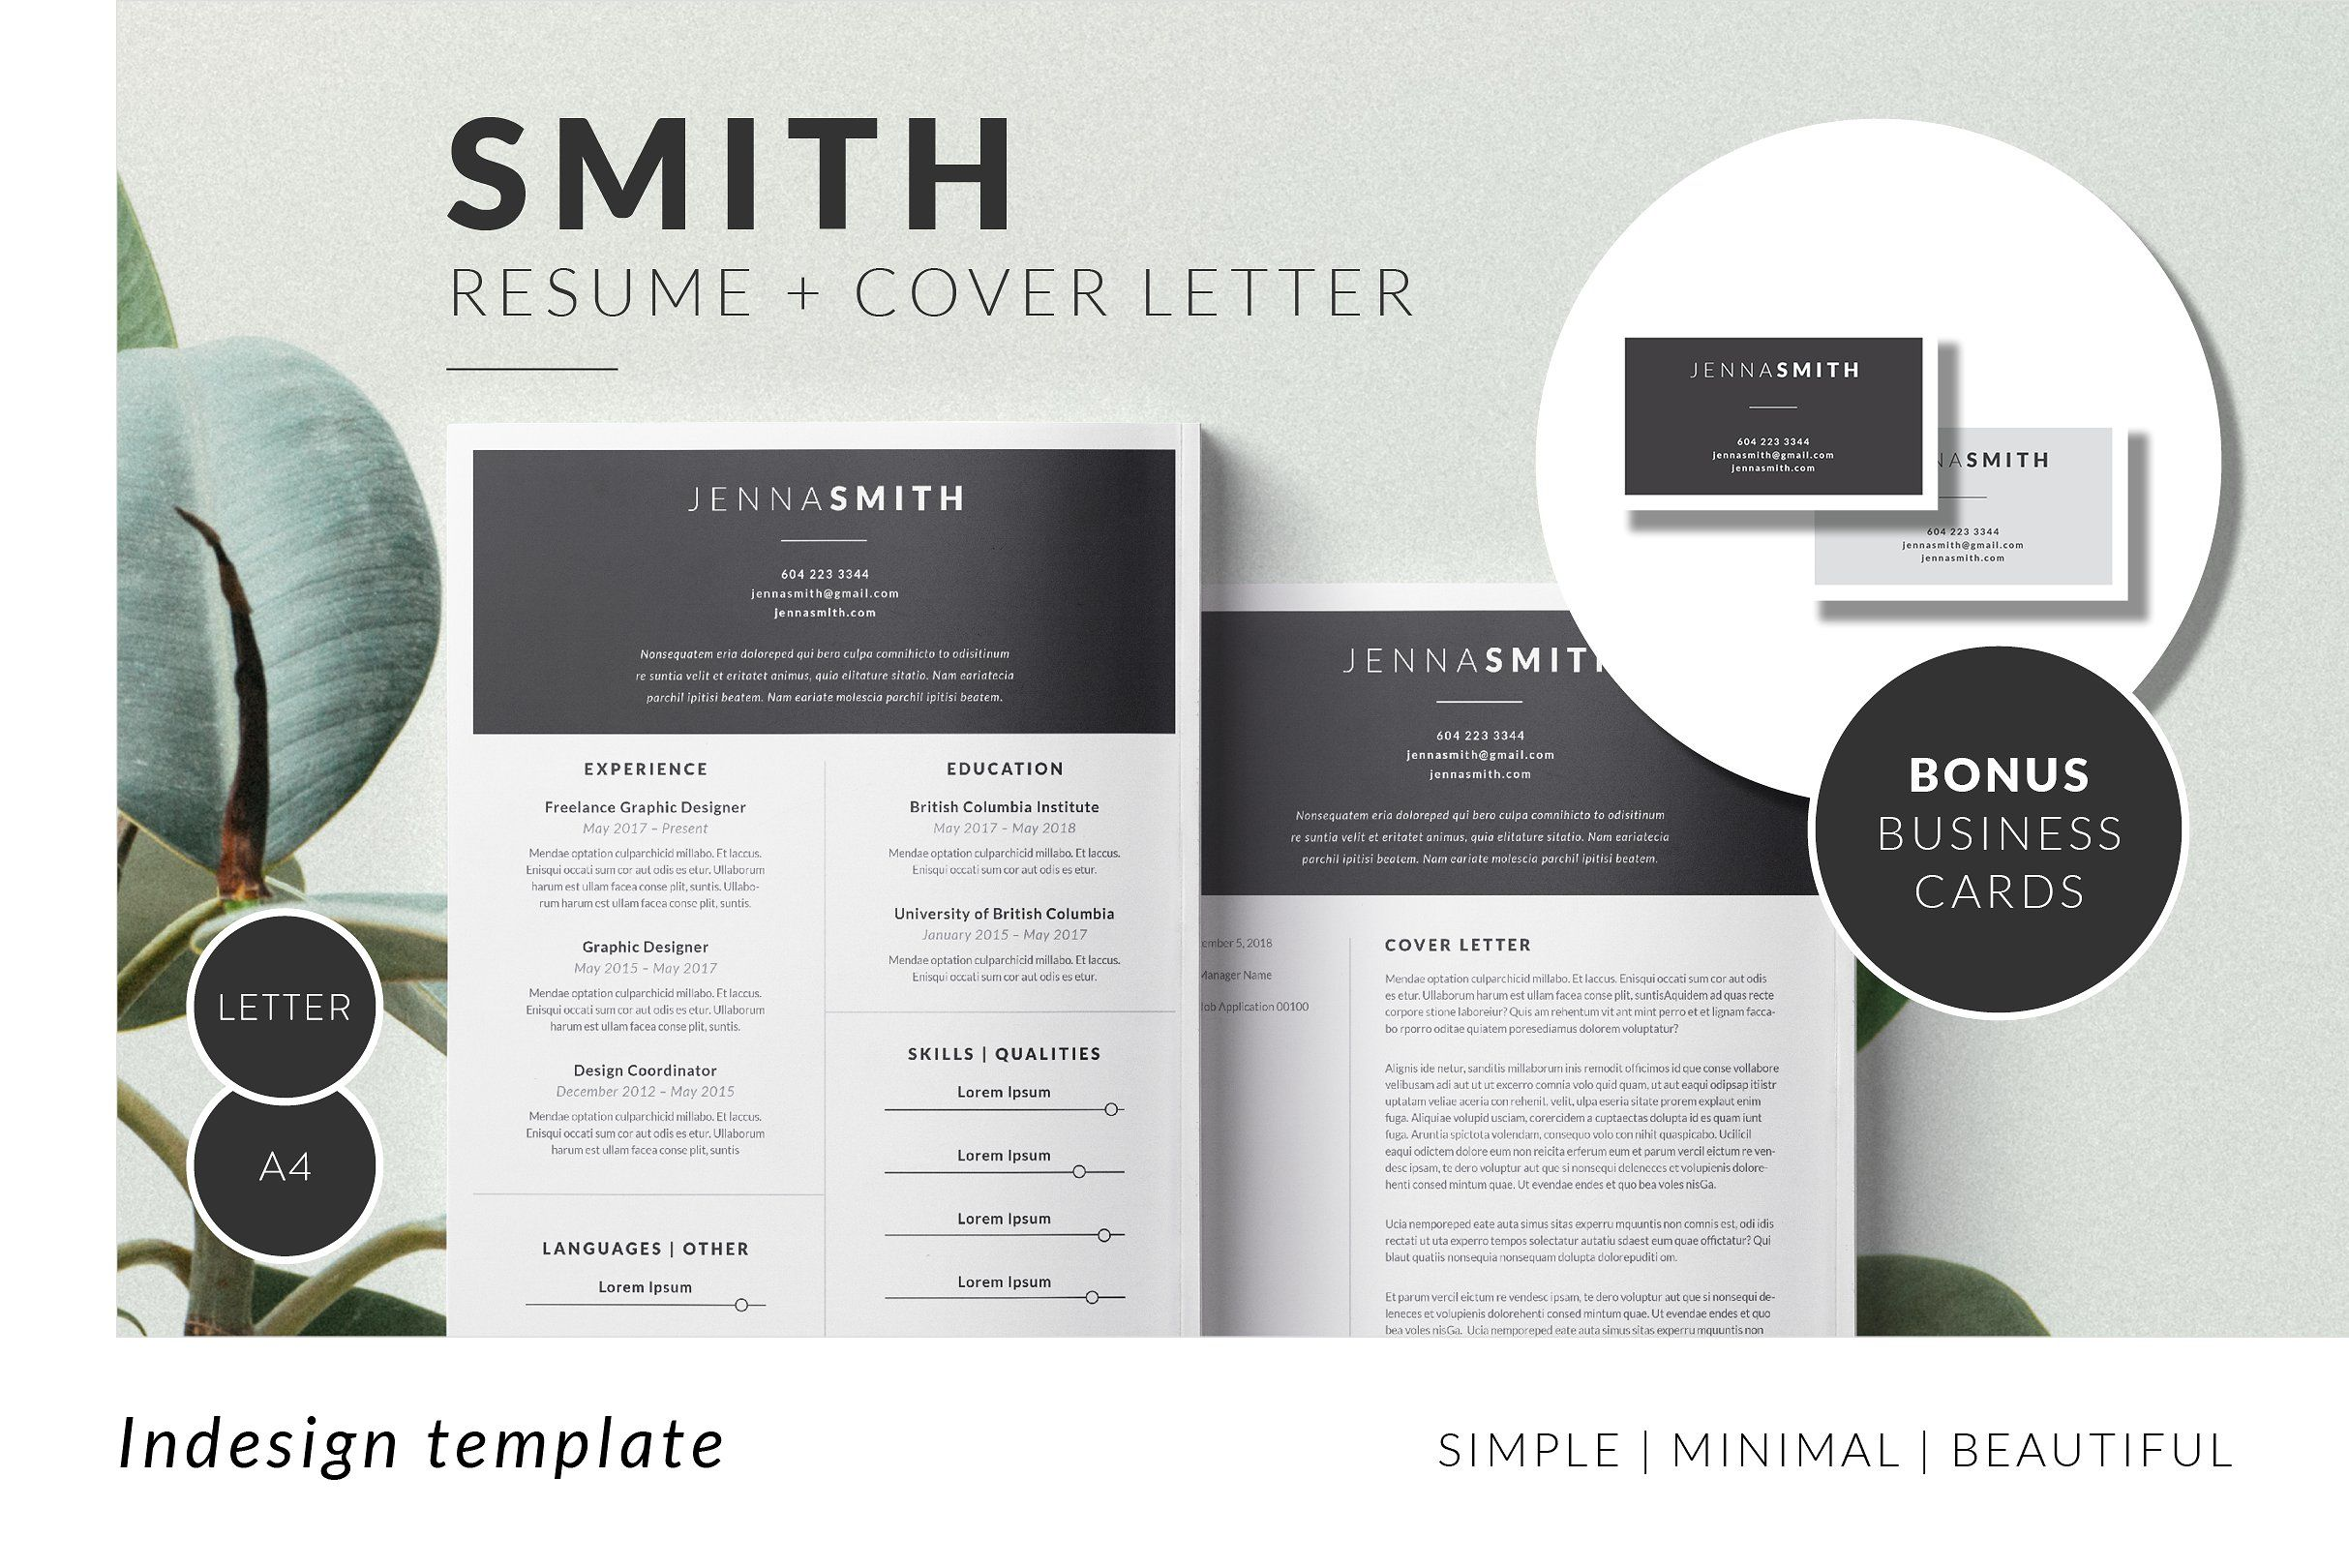 SMITH Minimal Resume Template #INDD#download#IDML#files